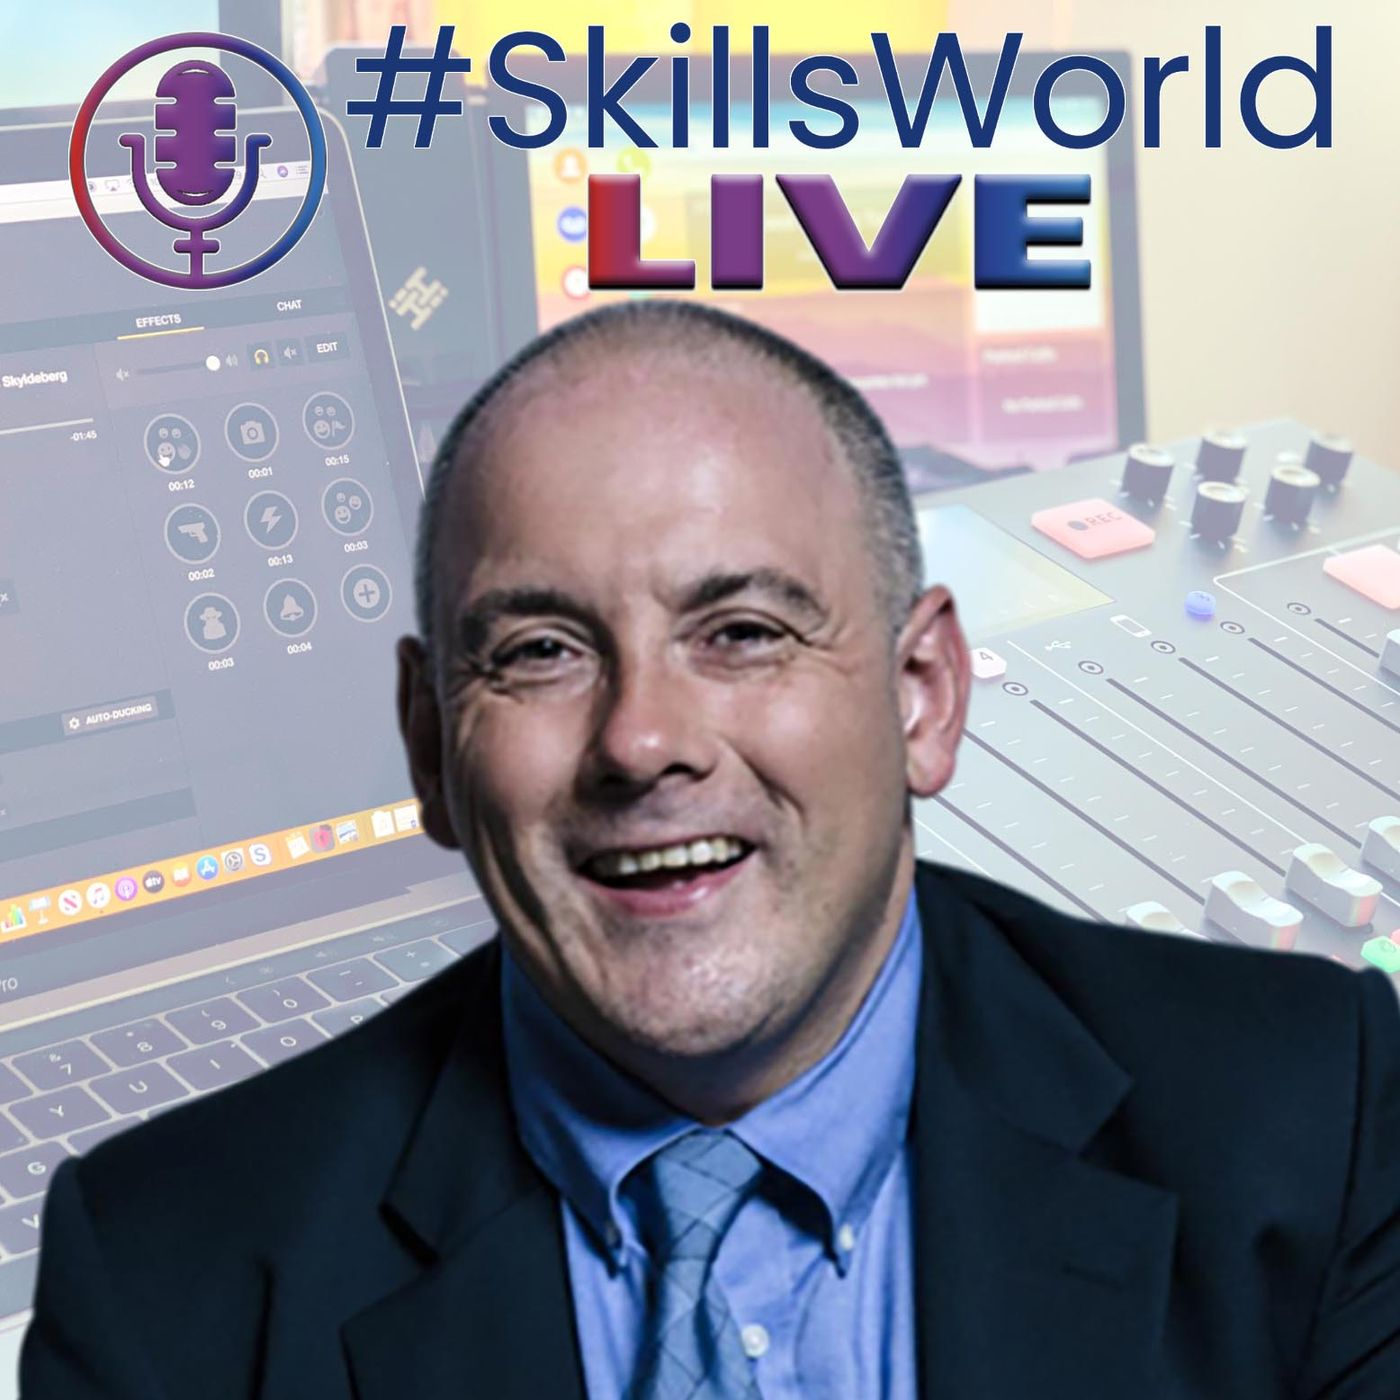 Do we need an Apprentice Guarantee? Weekly Show 1: #SkillsWorldLIVE